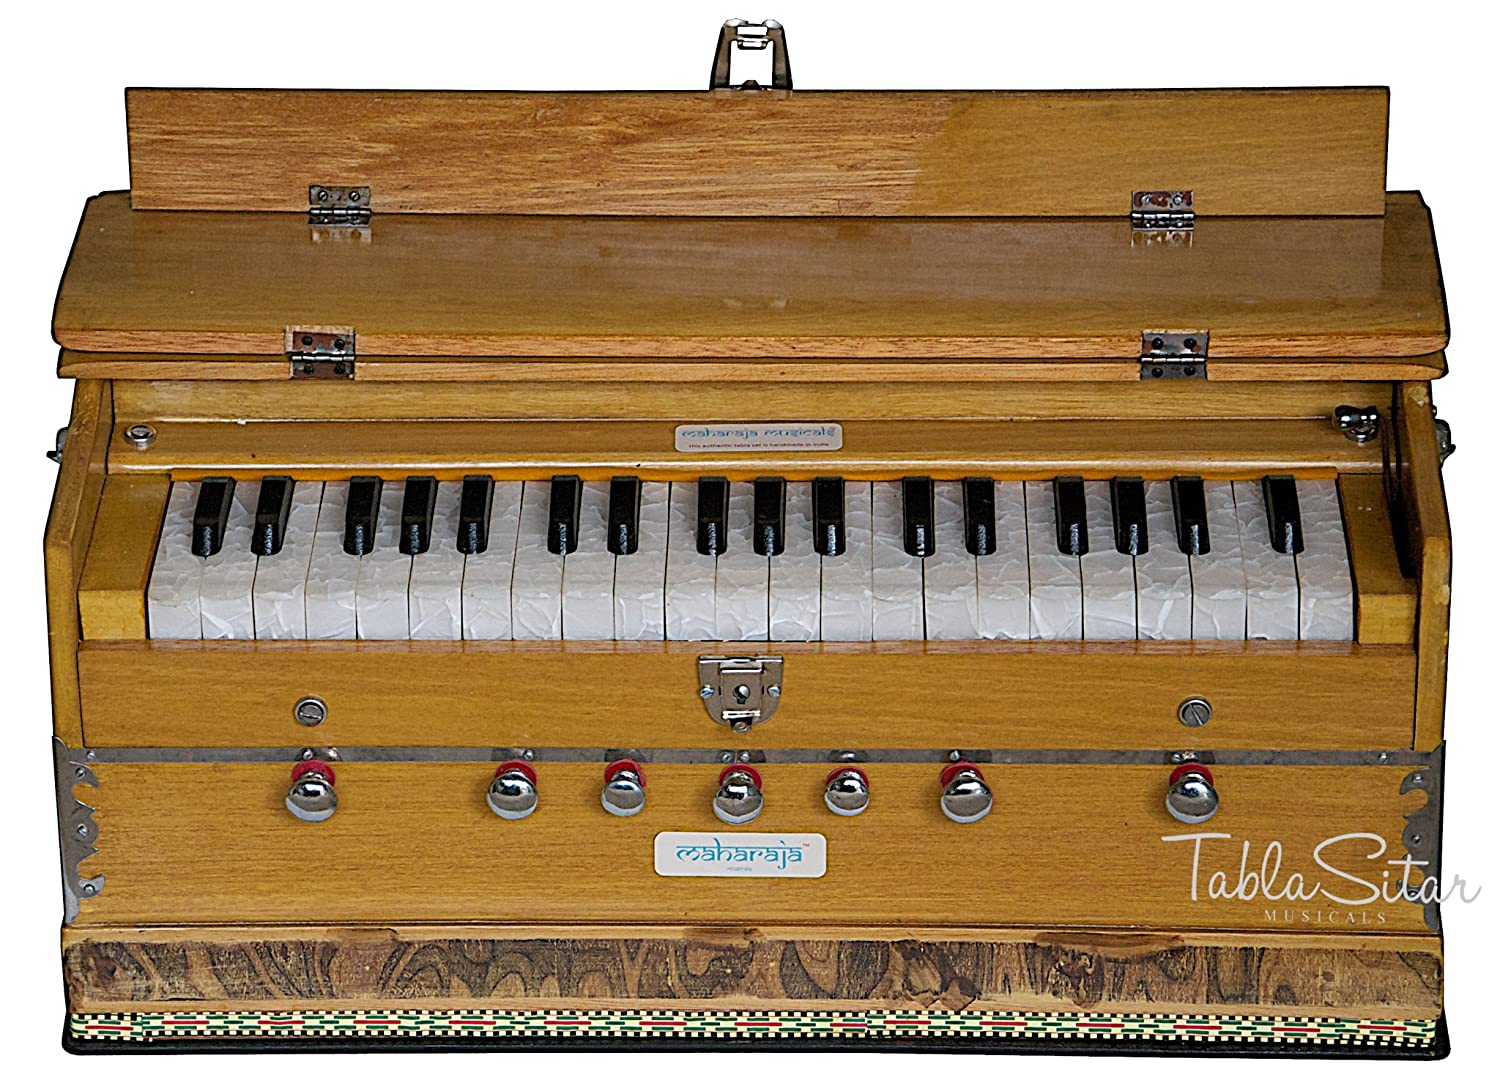 Harmonium, Maharaja Musicals, In USA, 3 1/4 Octave, Double Reed, Coupler, Natural Color, 7 Stops, Standard, Book, Padded Bag, Tuned to A440, Musical Instrument Indian (PDI-ABF)